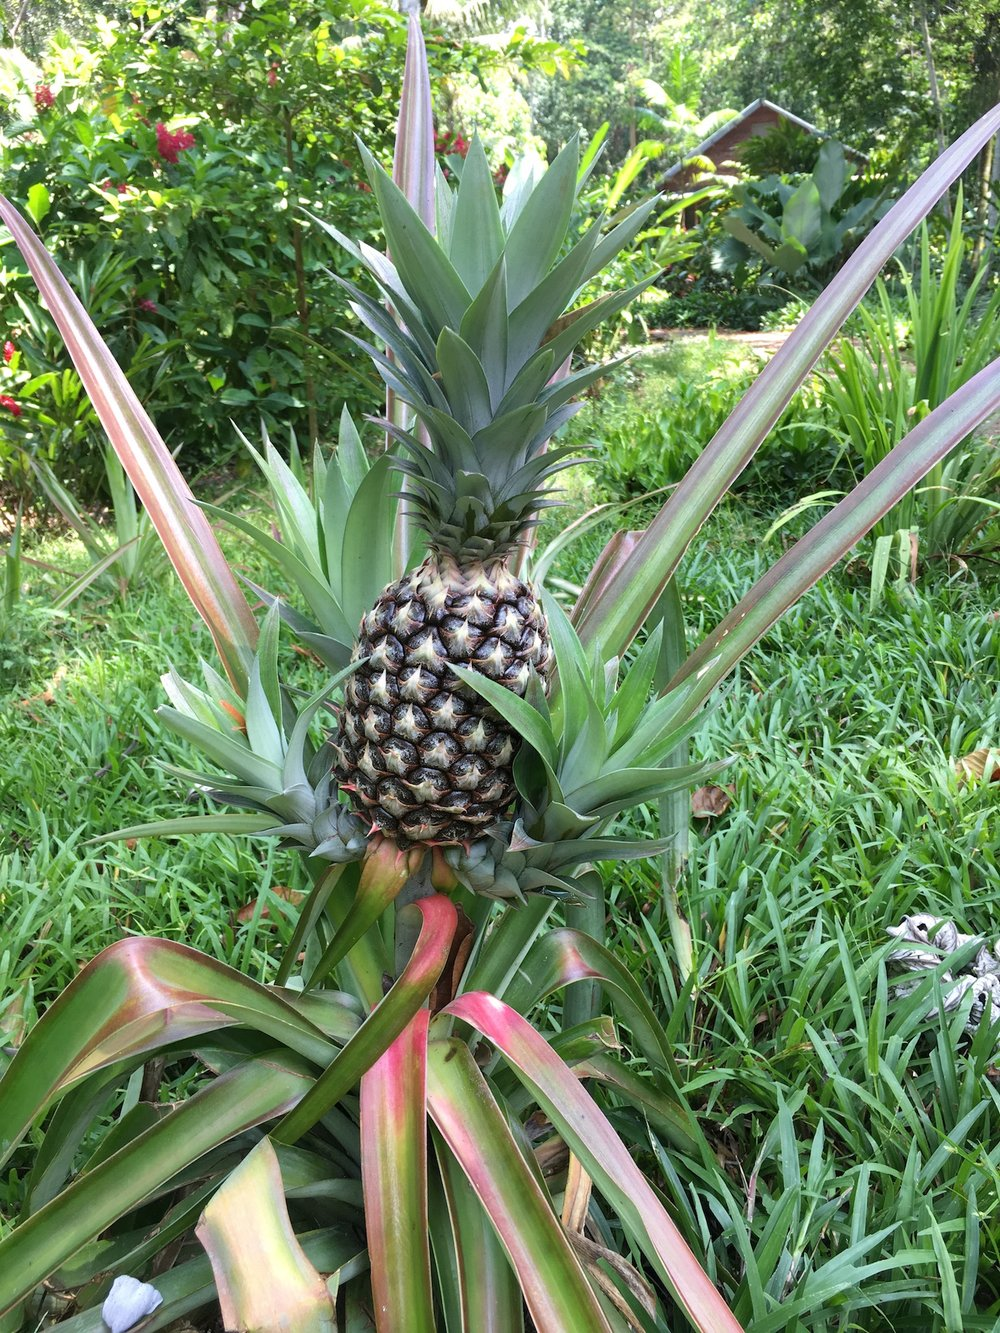 A Pineapple on its Spiky Throne